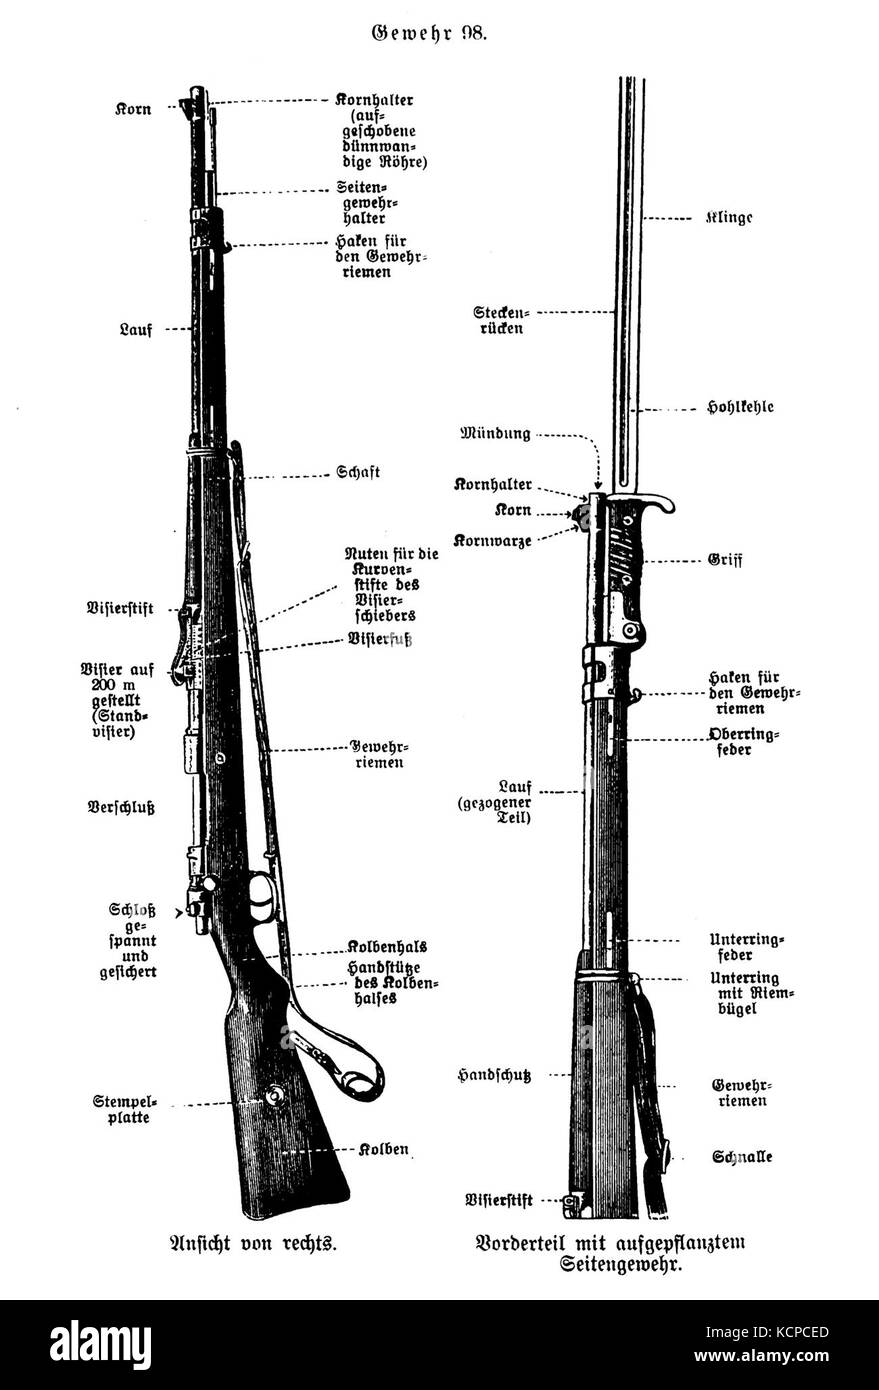 Gewehr 98 Stock Photos & Gewehr 98 Stock Images - Alamy